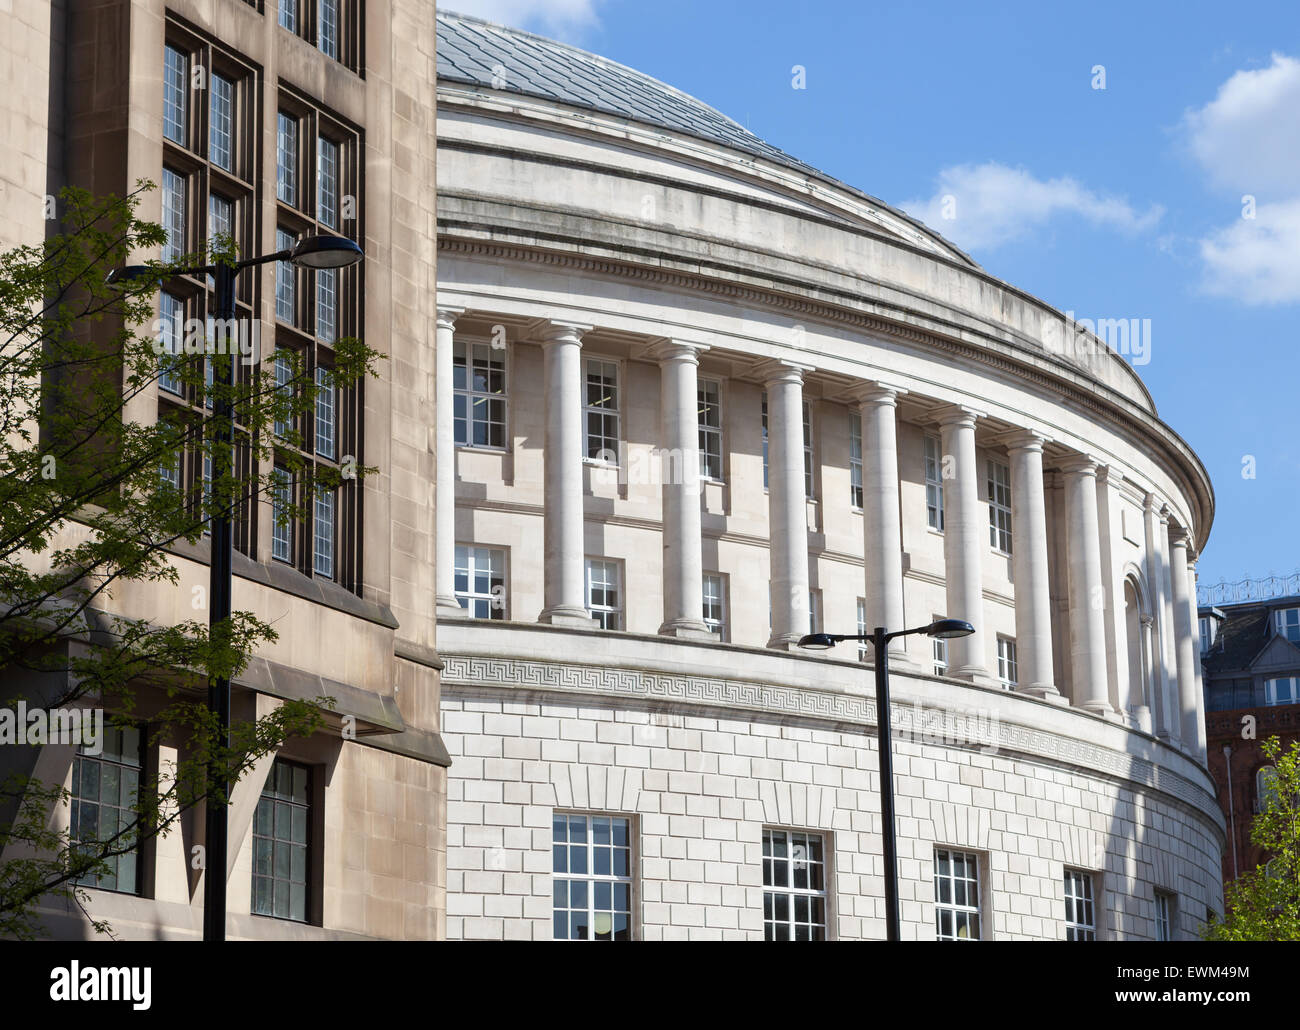 Central library and Manchester council building in Manchester England. - Stock Image